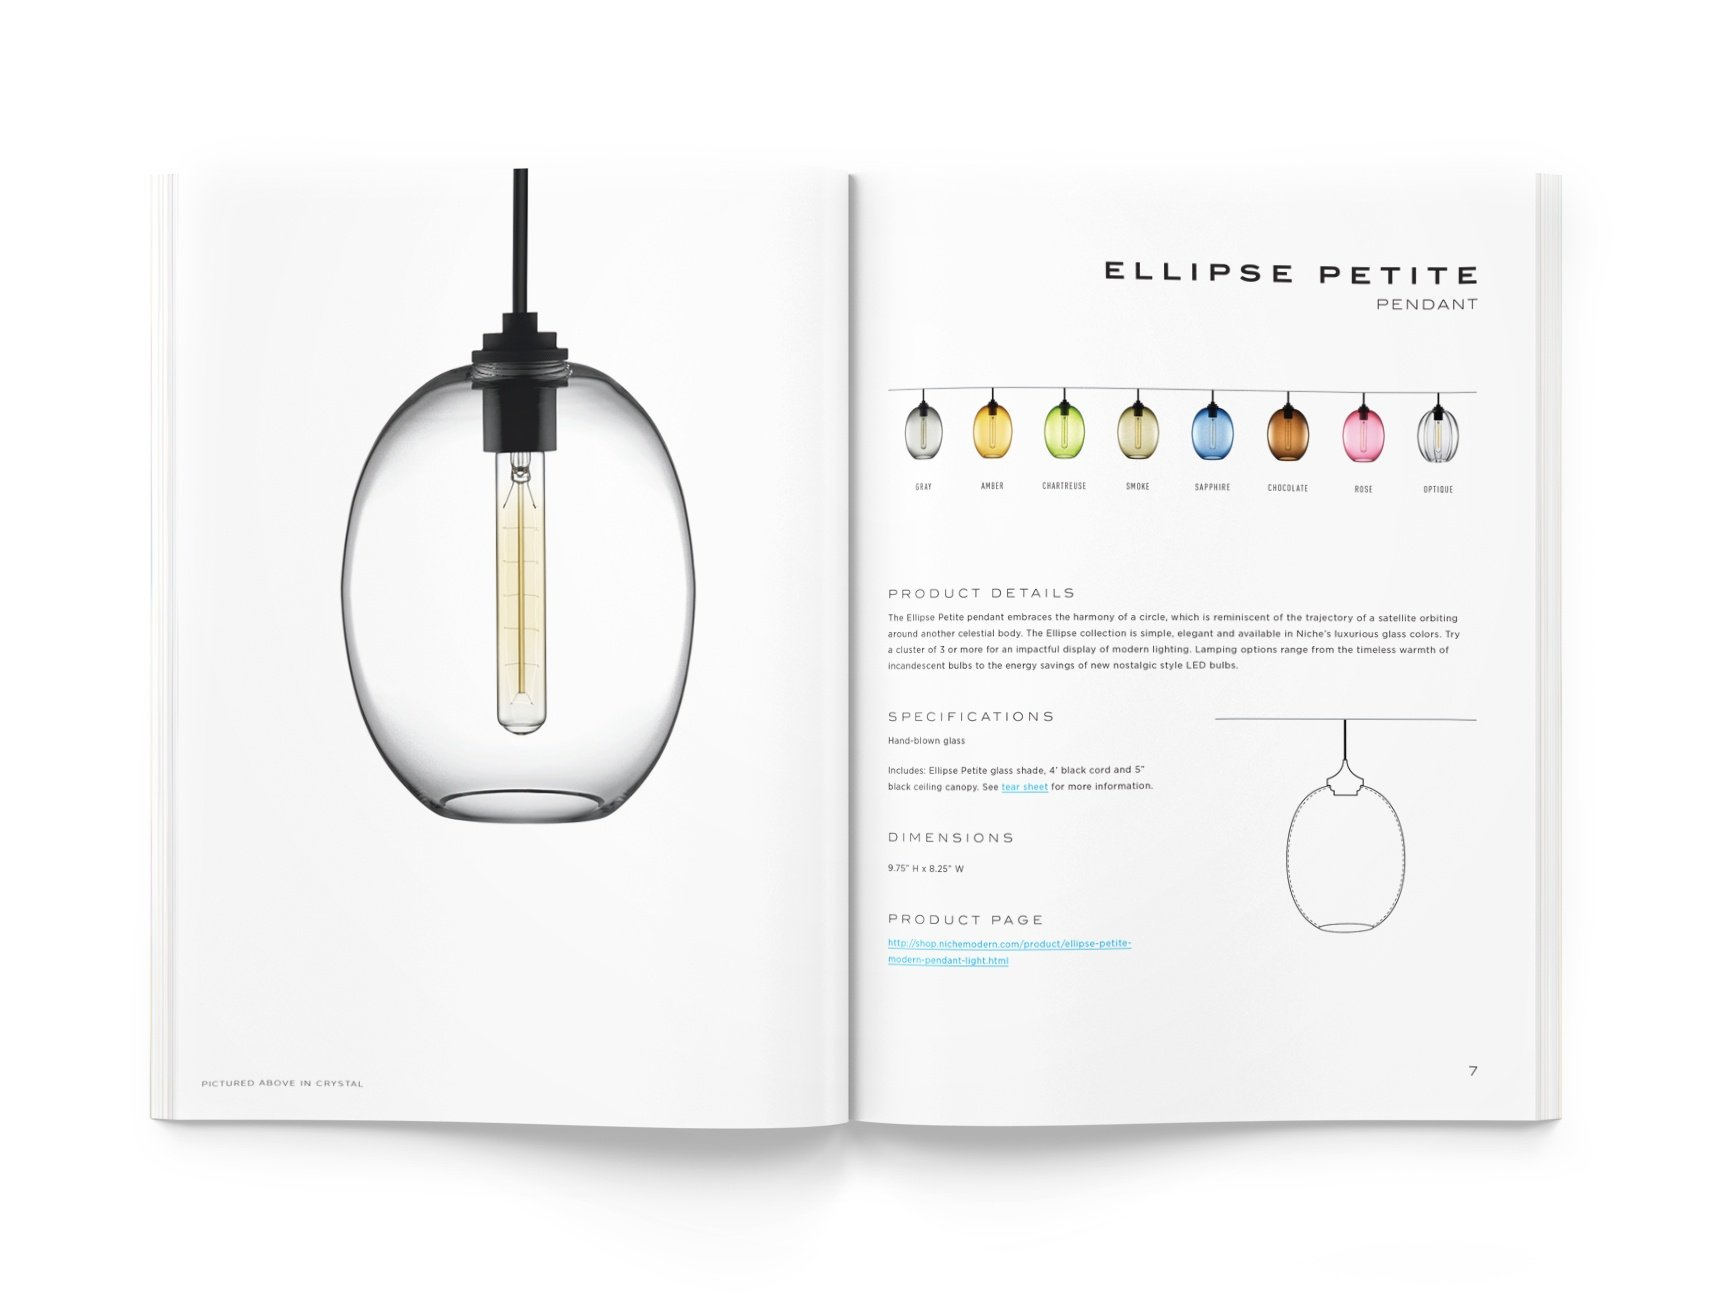 Ellipse Modern Pendant Light Series Guidebook